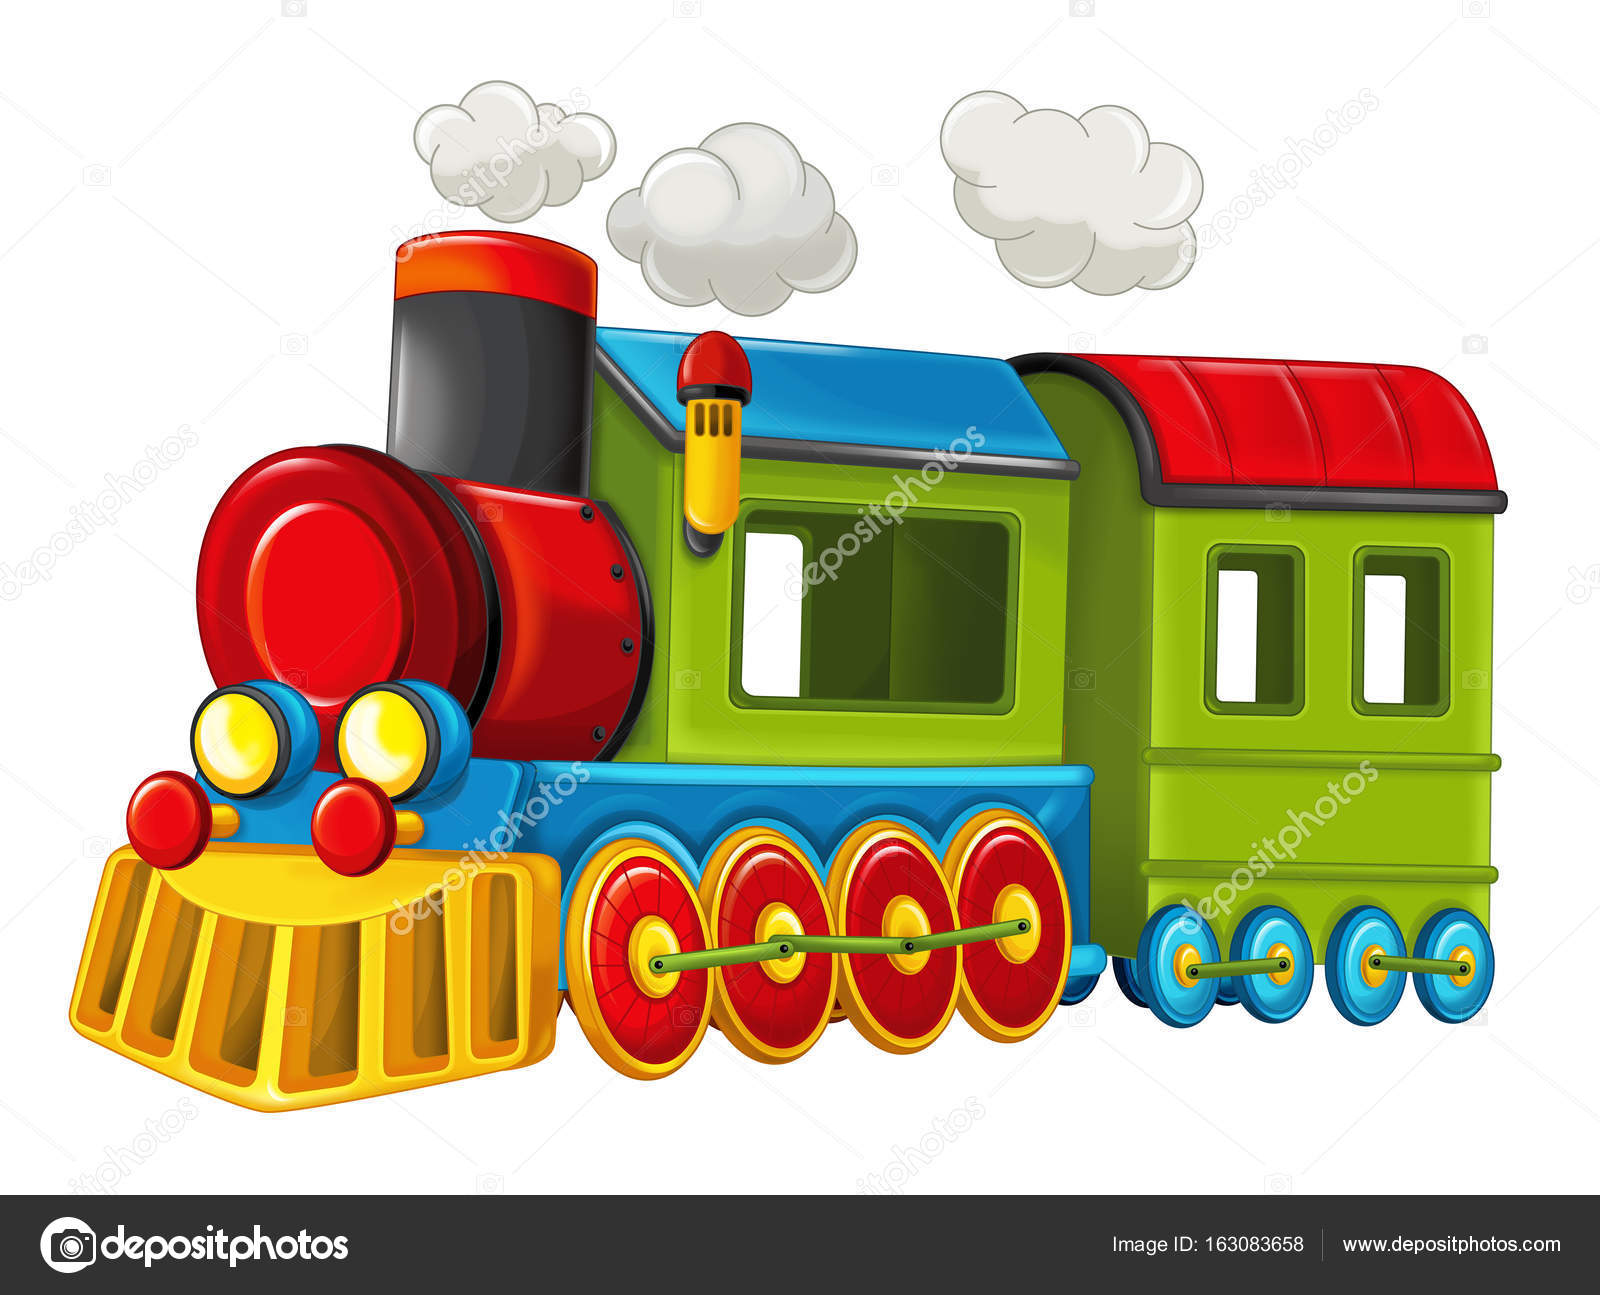 Dessin anim dr le la recherche de train vapeur photographie illustrator hft 163083658 - Train dessin anime chuggington ...